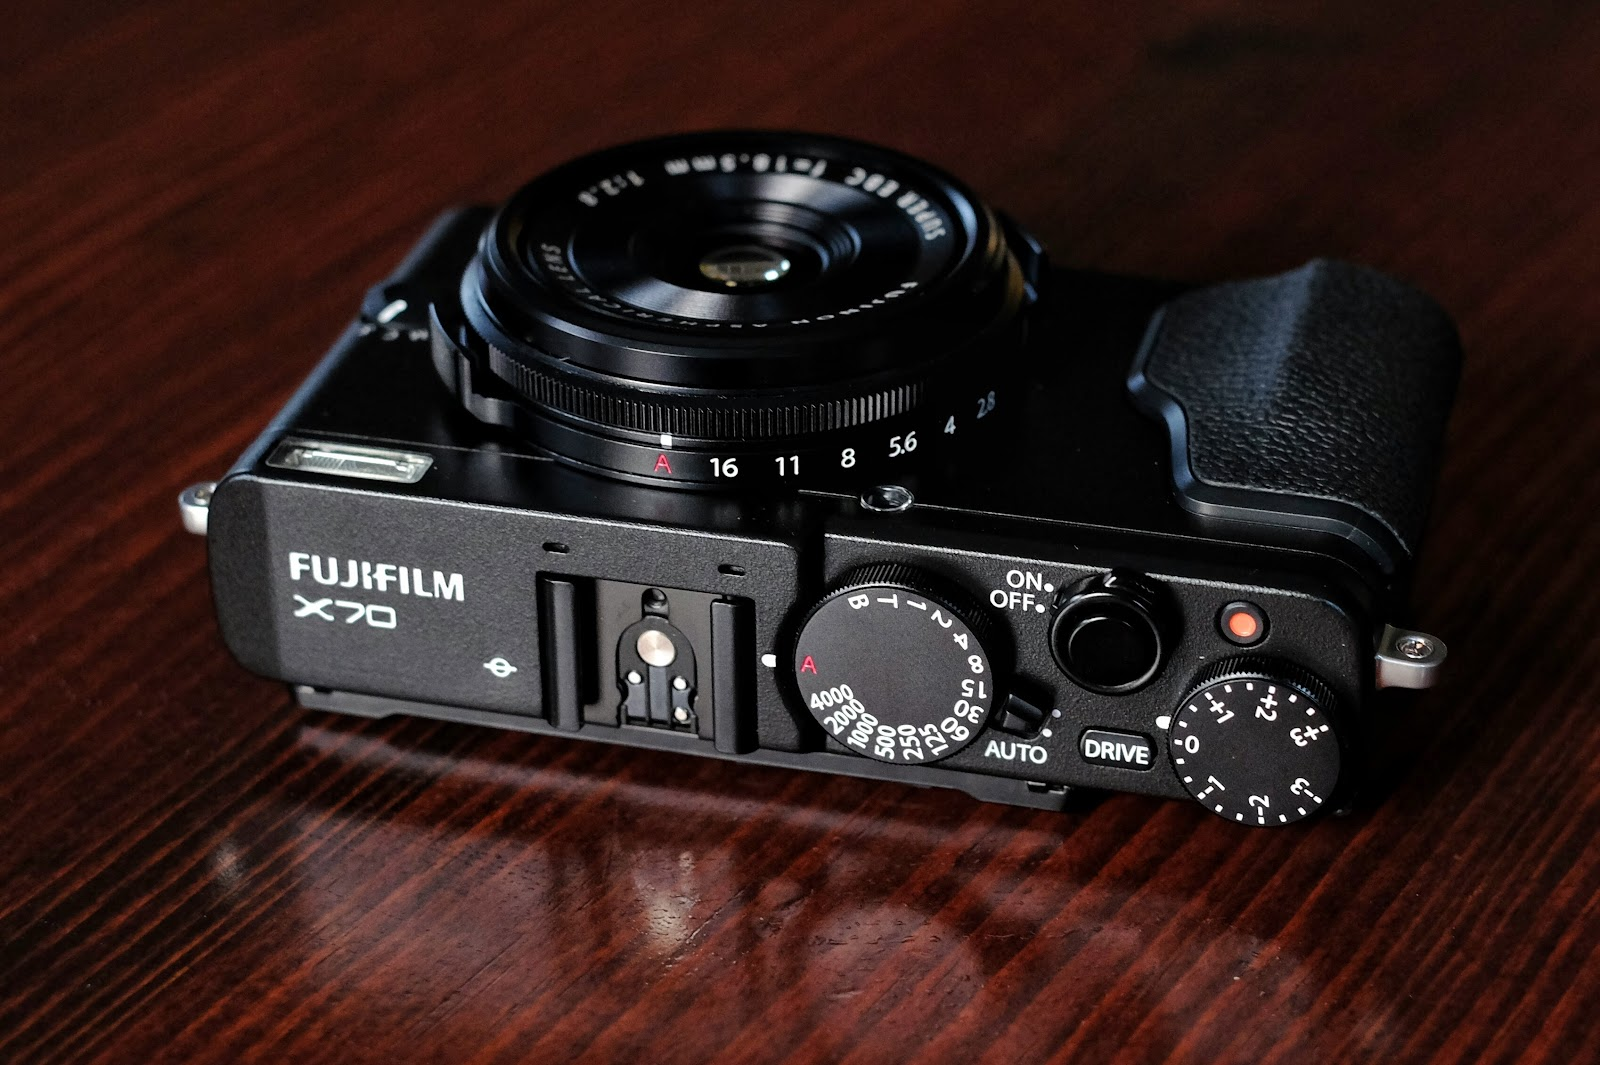 Fujifilm X70 Initial Impressions And Images